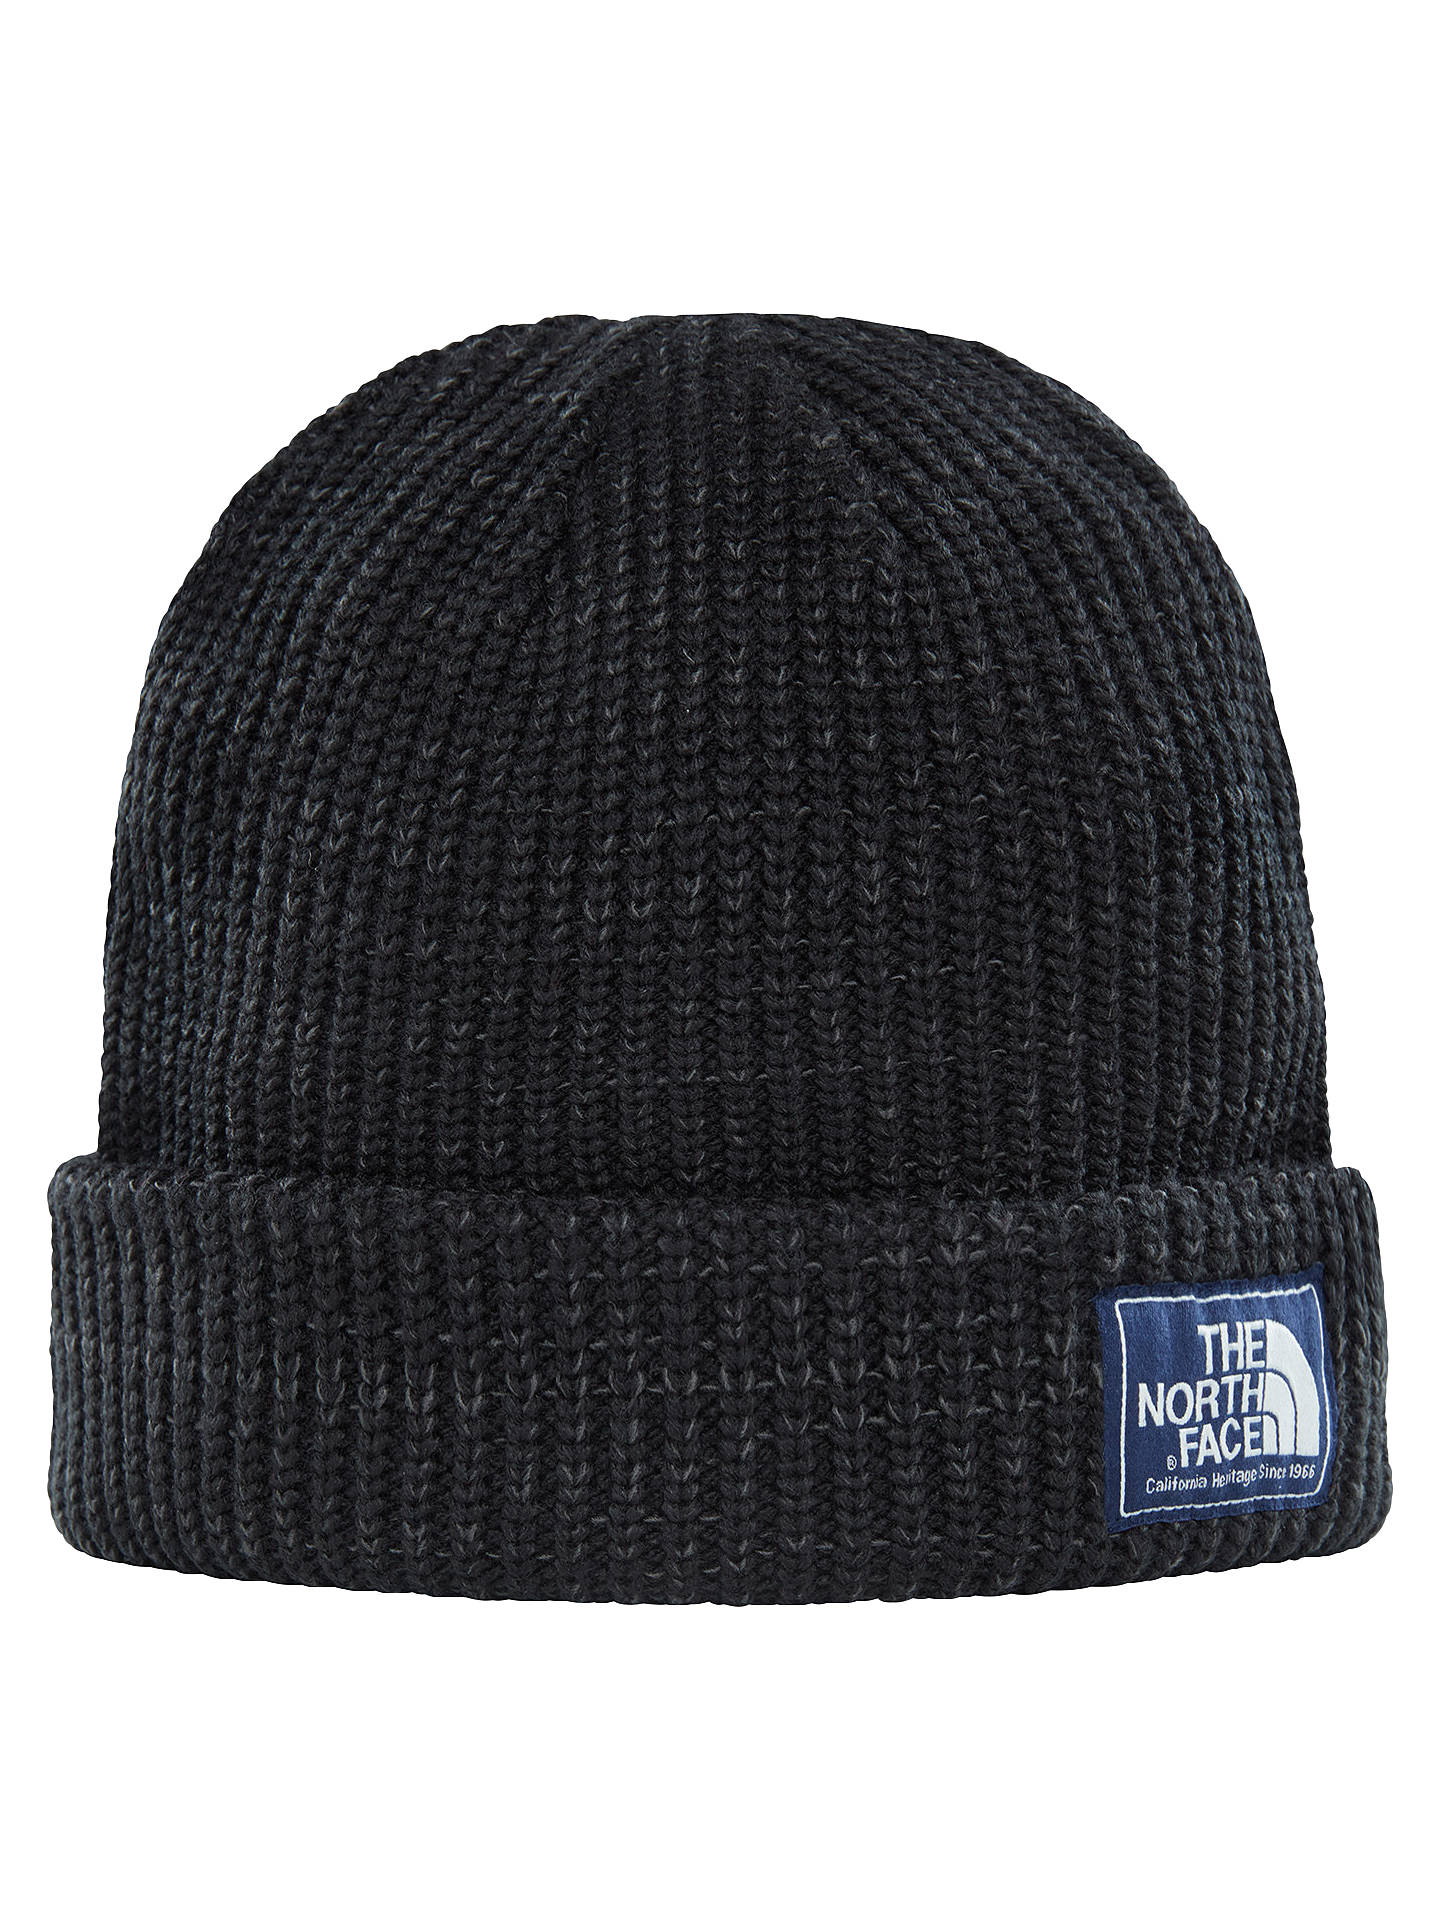 BuyThe North Face Salty Dog Beanie f4e9bfb8b